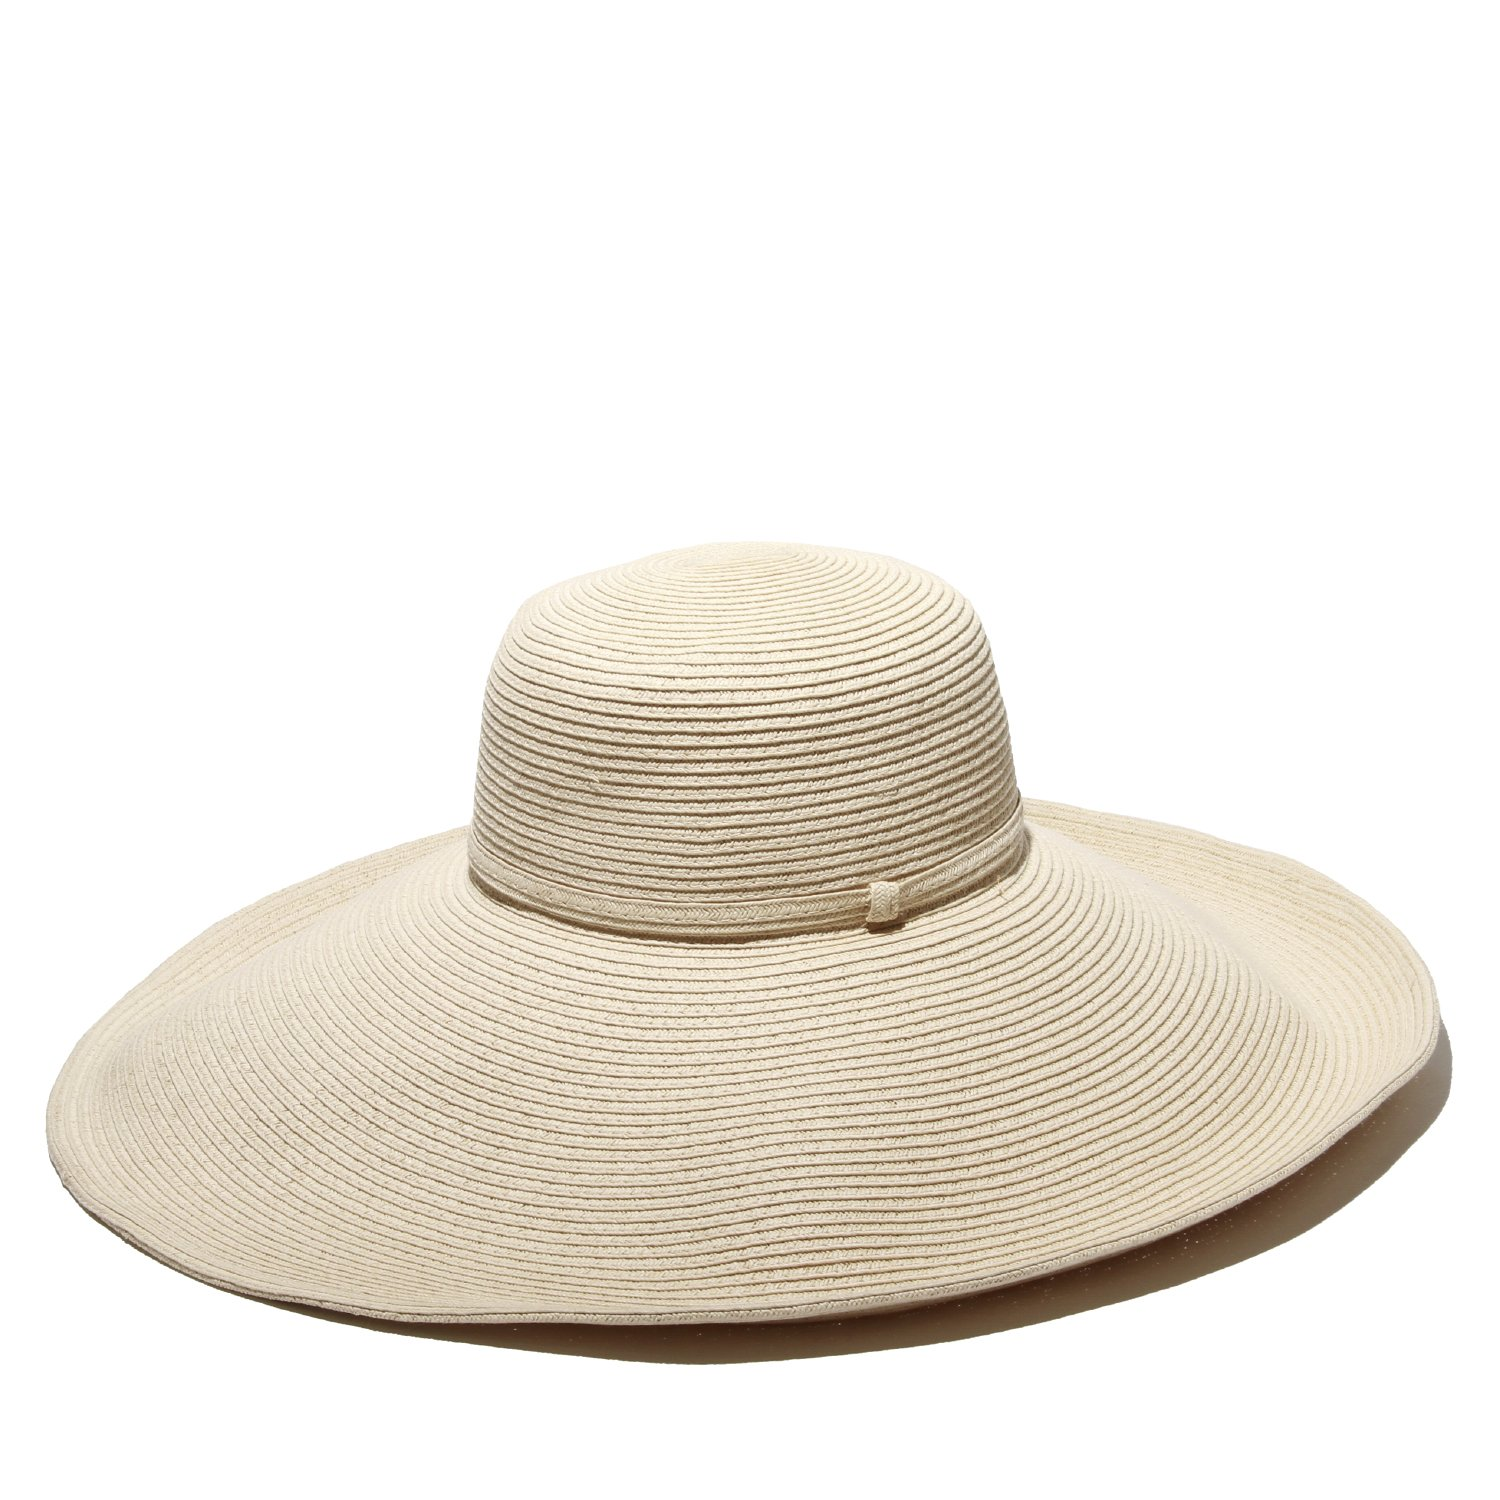 Gottex Women's Belladonna Wide Brim Packable Sun Hat, Rated UPF 50 For Max Sun Protection, Ivory, One Size by Gottex